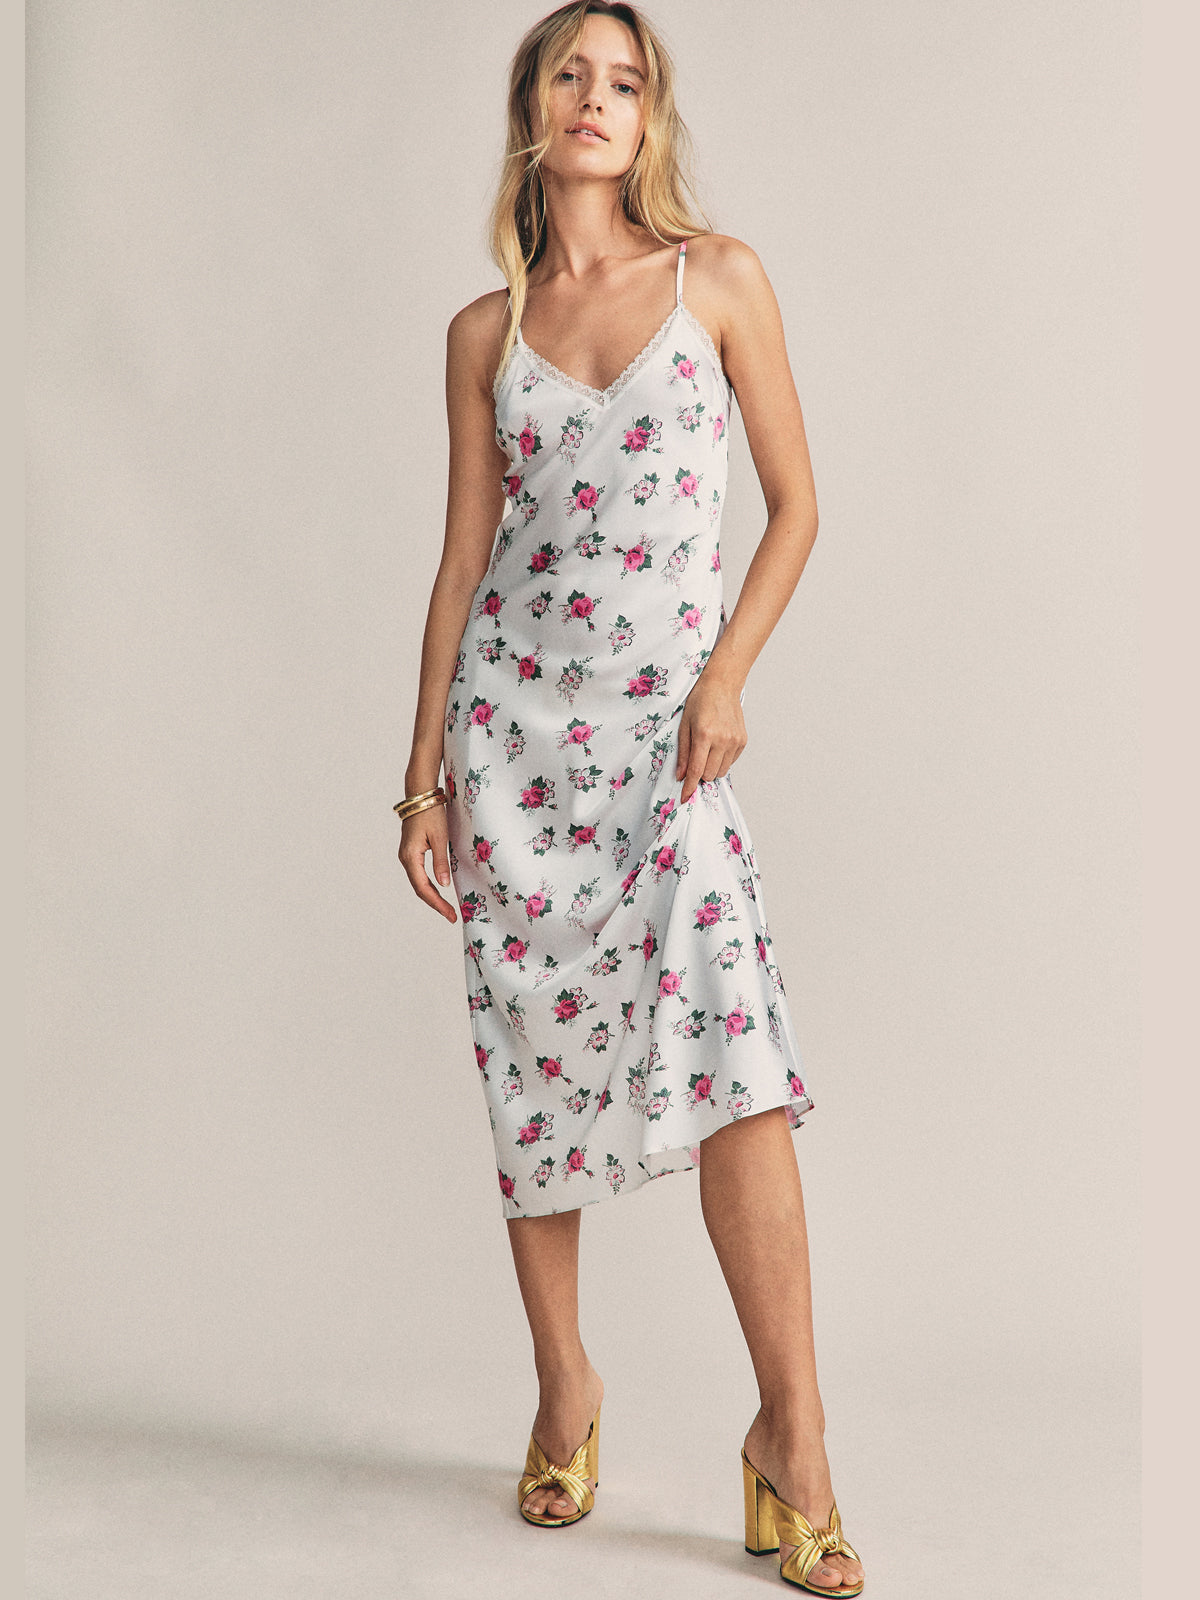 Stella Slip Dress in Pretty Baby By Morgan Lane